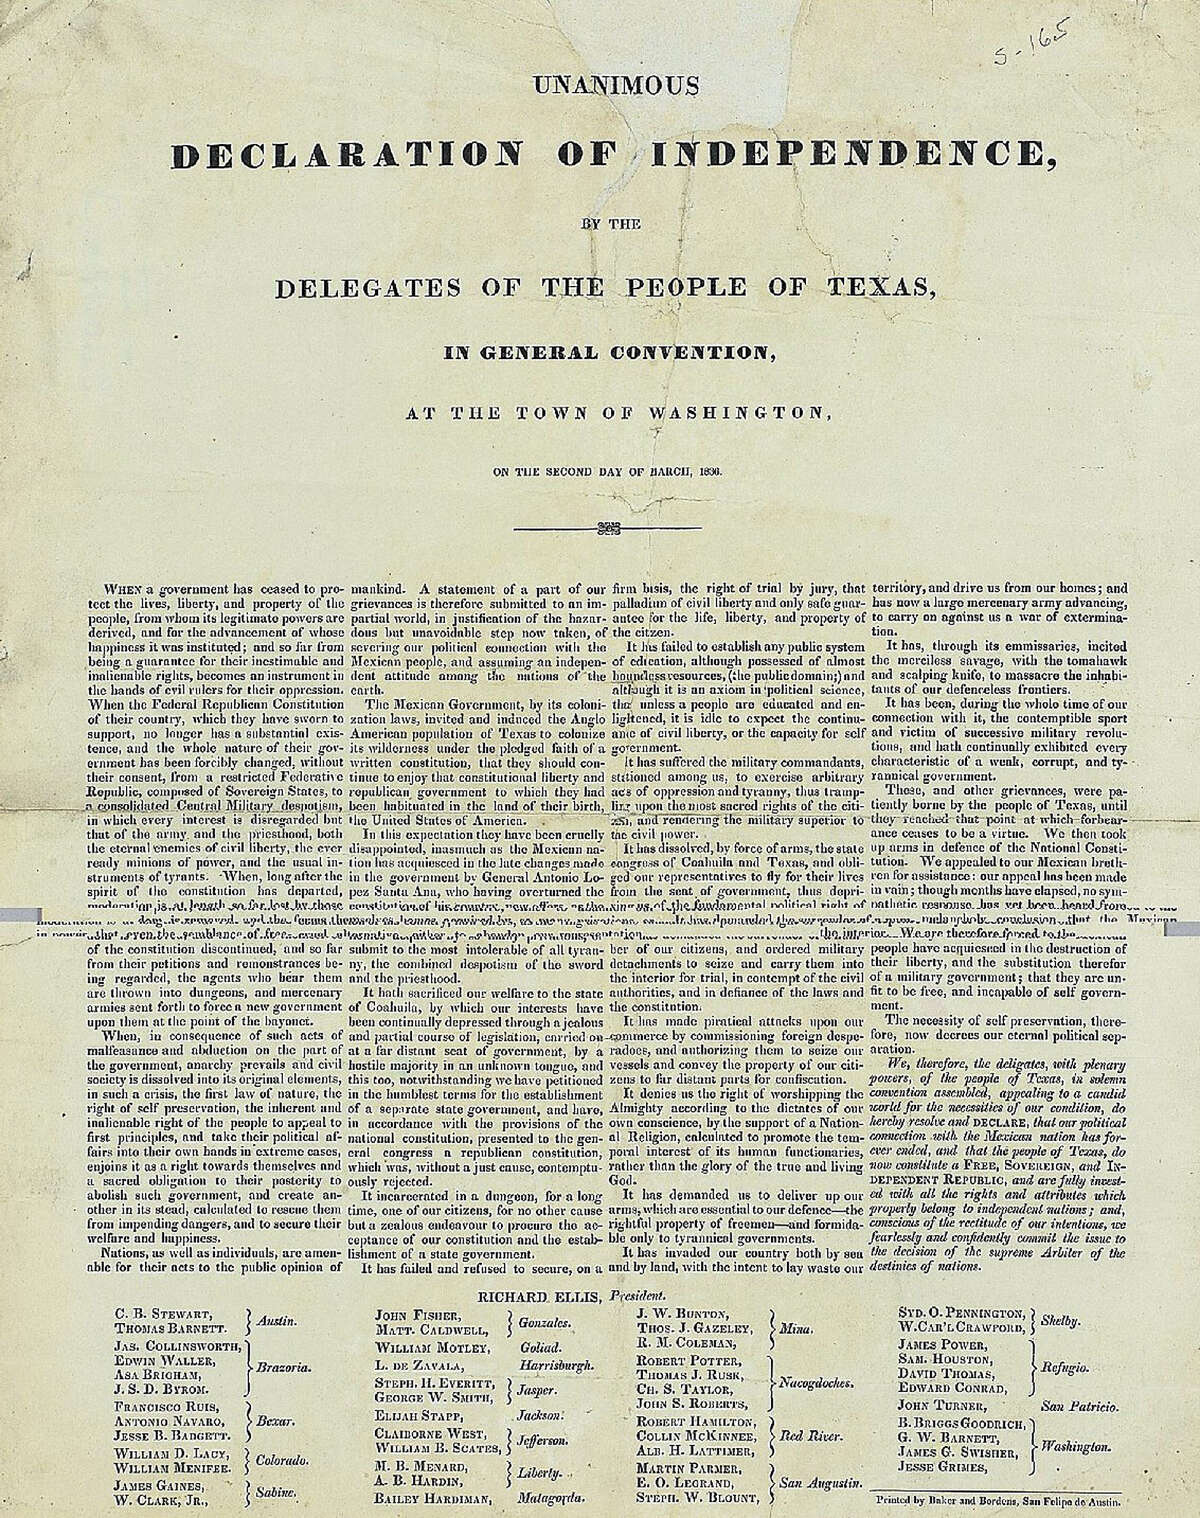 A copy of the Texas Declaration of Independence that was auctioned by Sotheby's in New York in 2004.